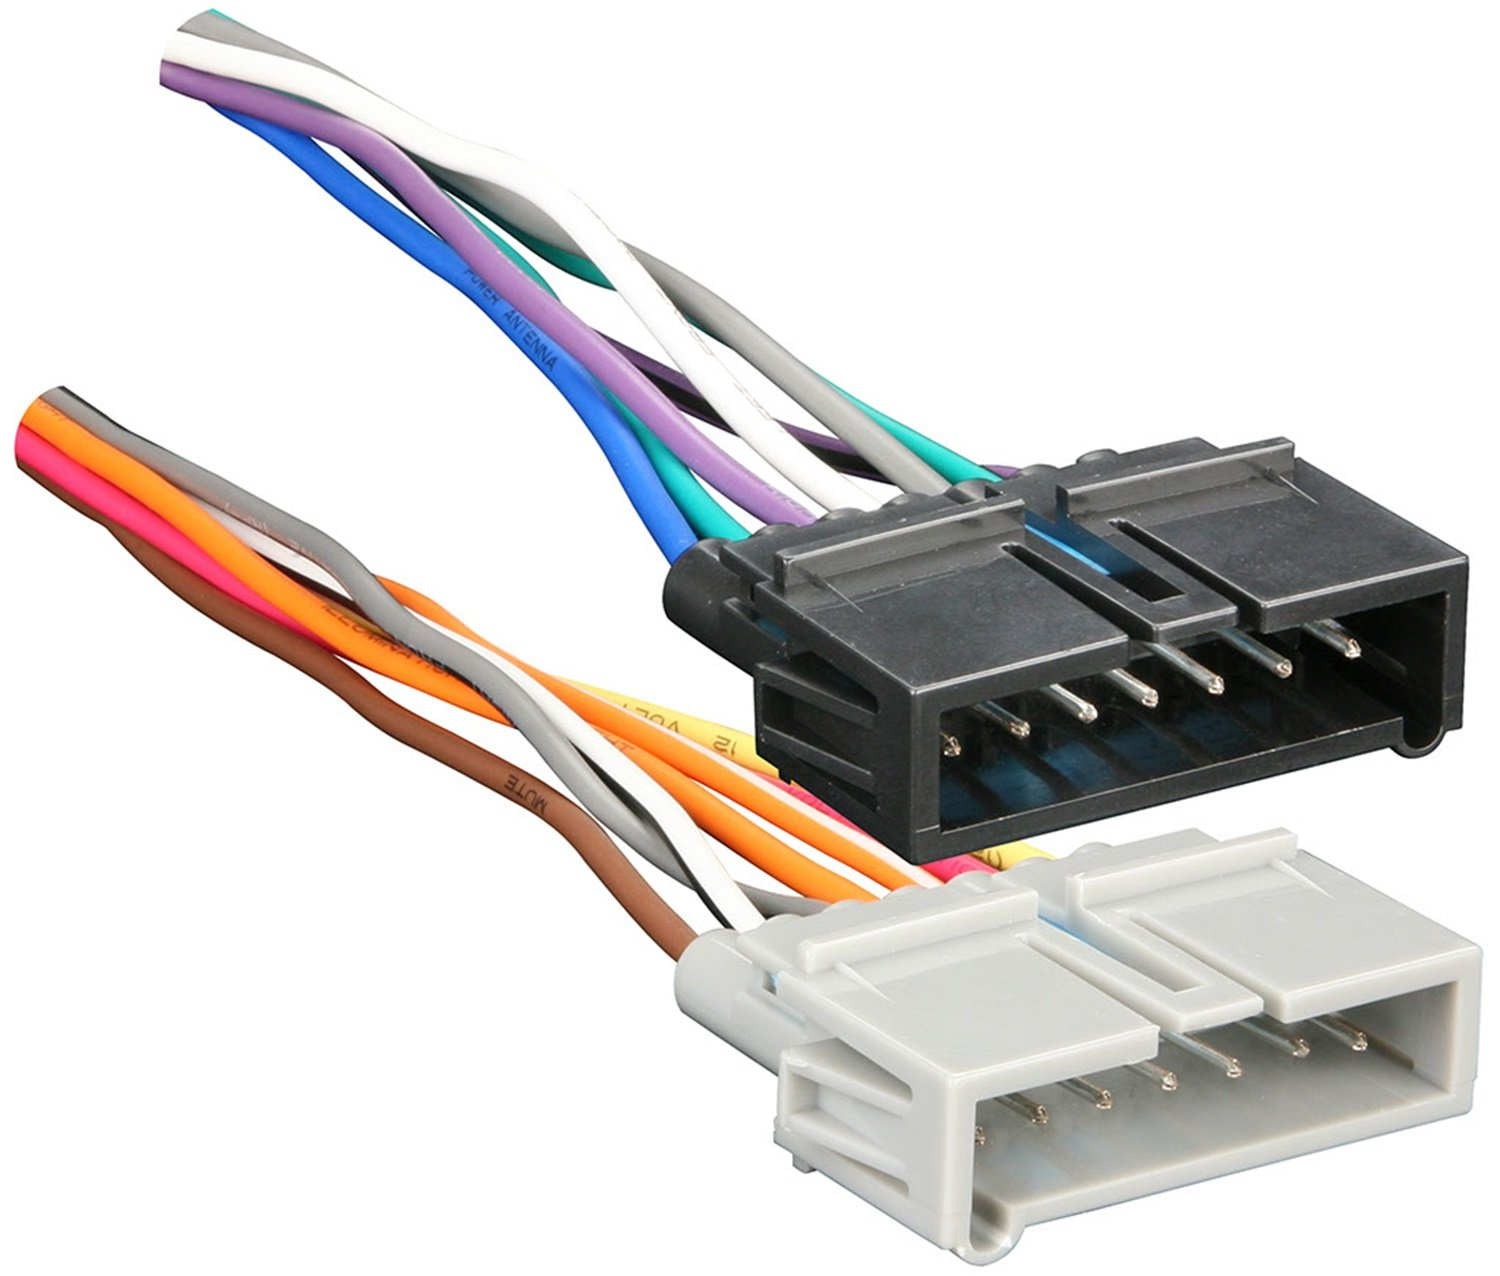 71QUZlC QWL._SL1500_ amazon com metra 70 1817 radio wiring harness for chrysler jeep  at edmiracle.co